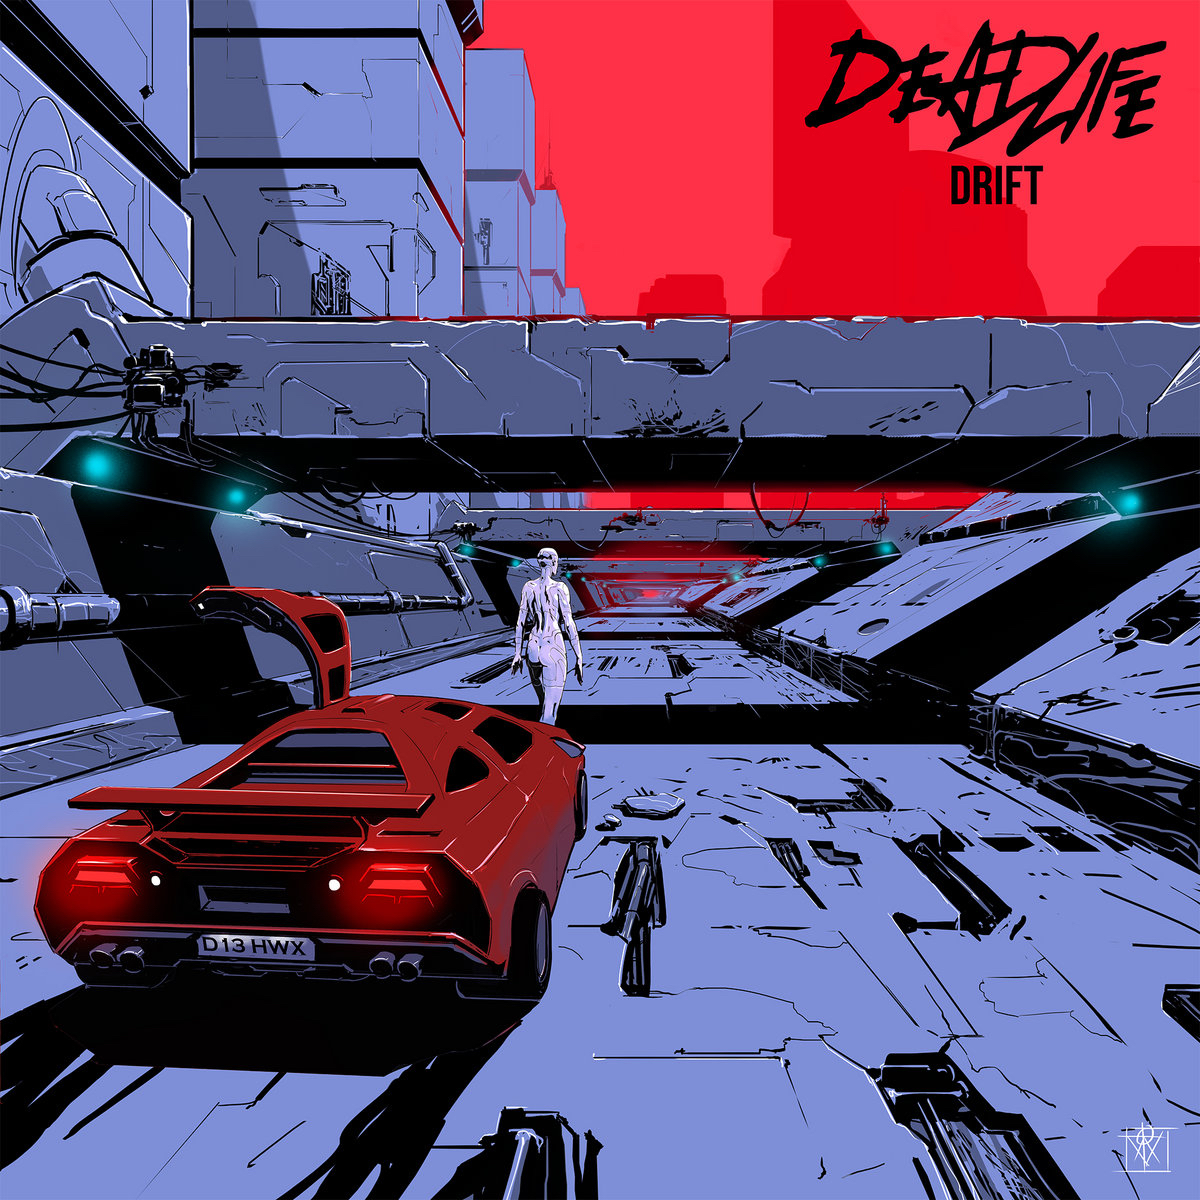 DEADLIFE: The darksynth producer on Manchester's doorstep is one of music's best-kept secrets, The Manc